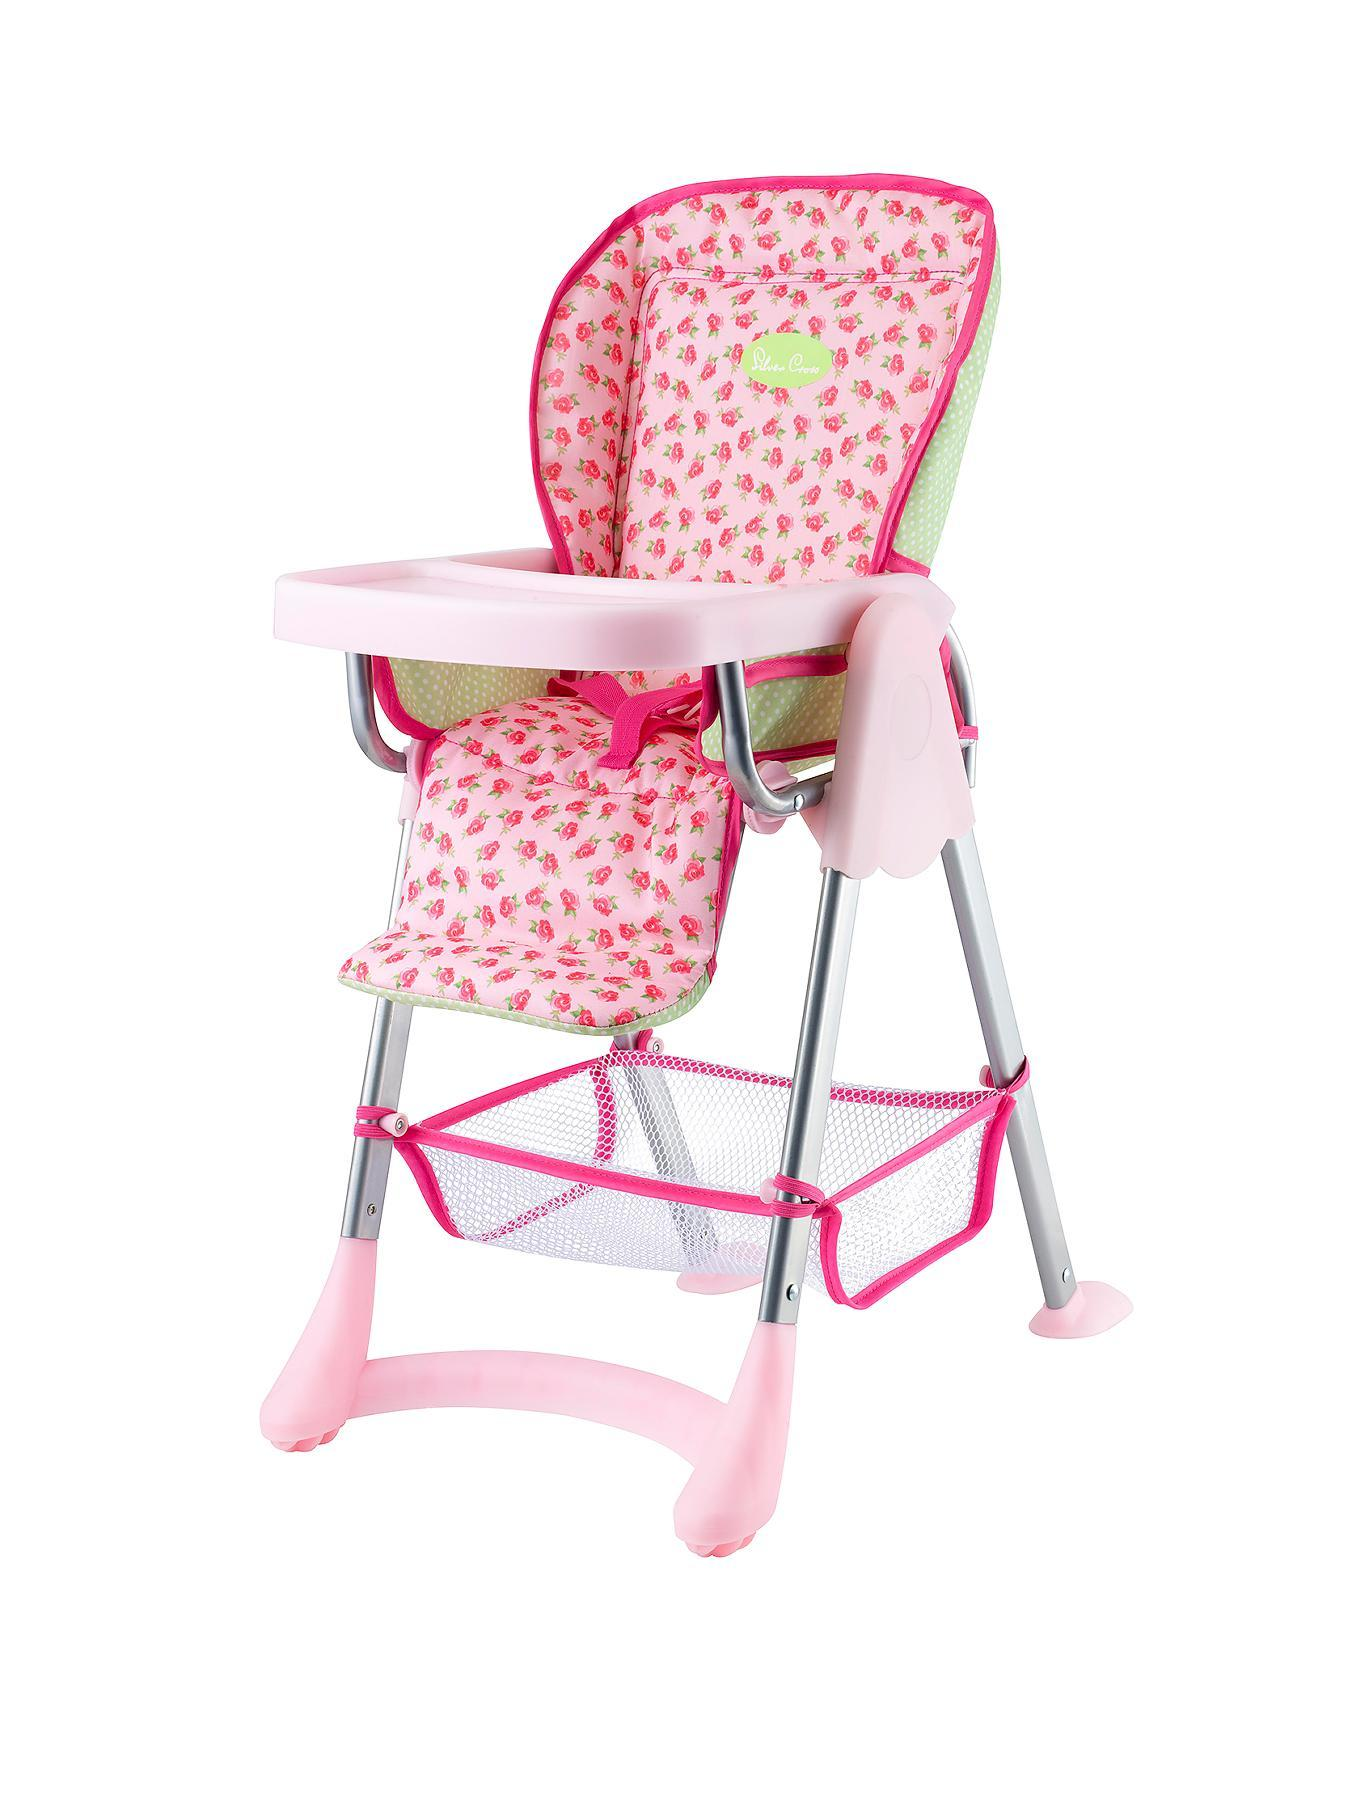 high chair for dolls swing tj maxx buy cheap doll compare prices best